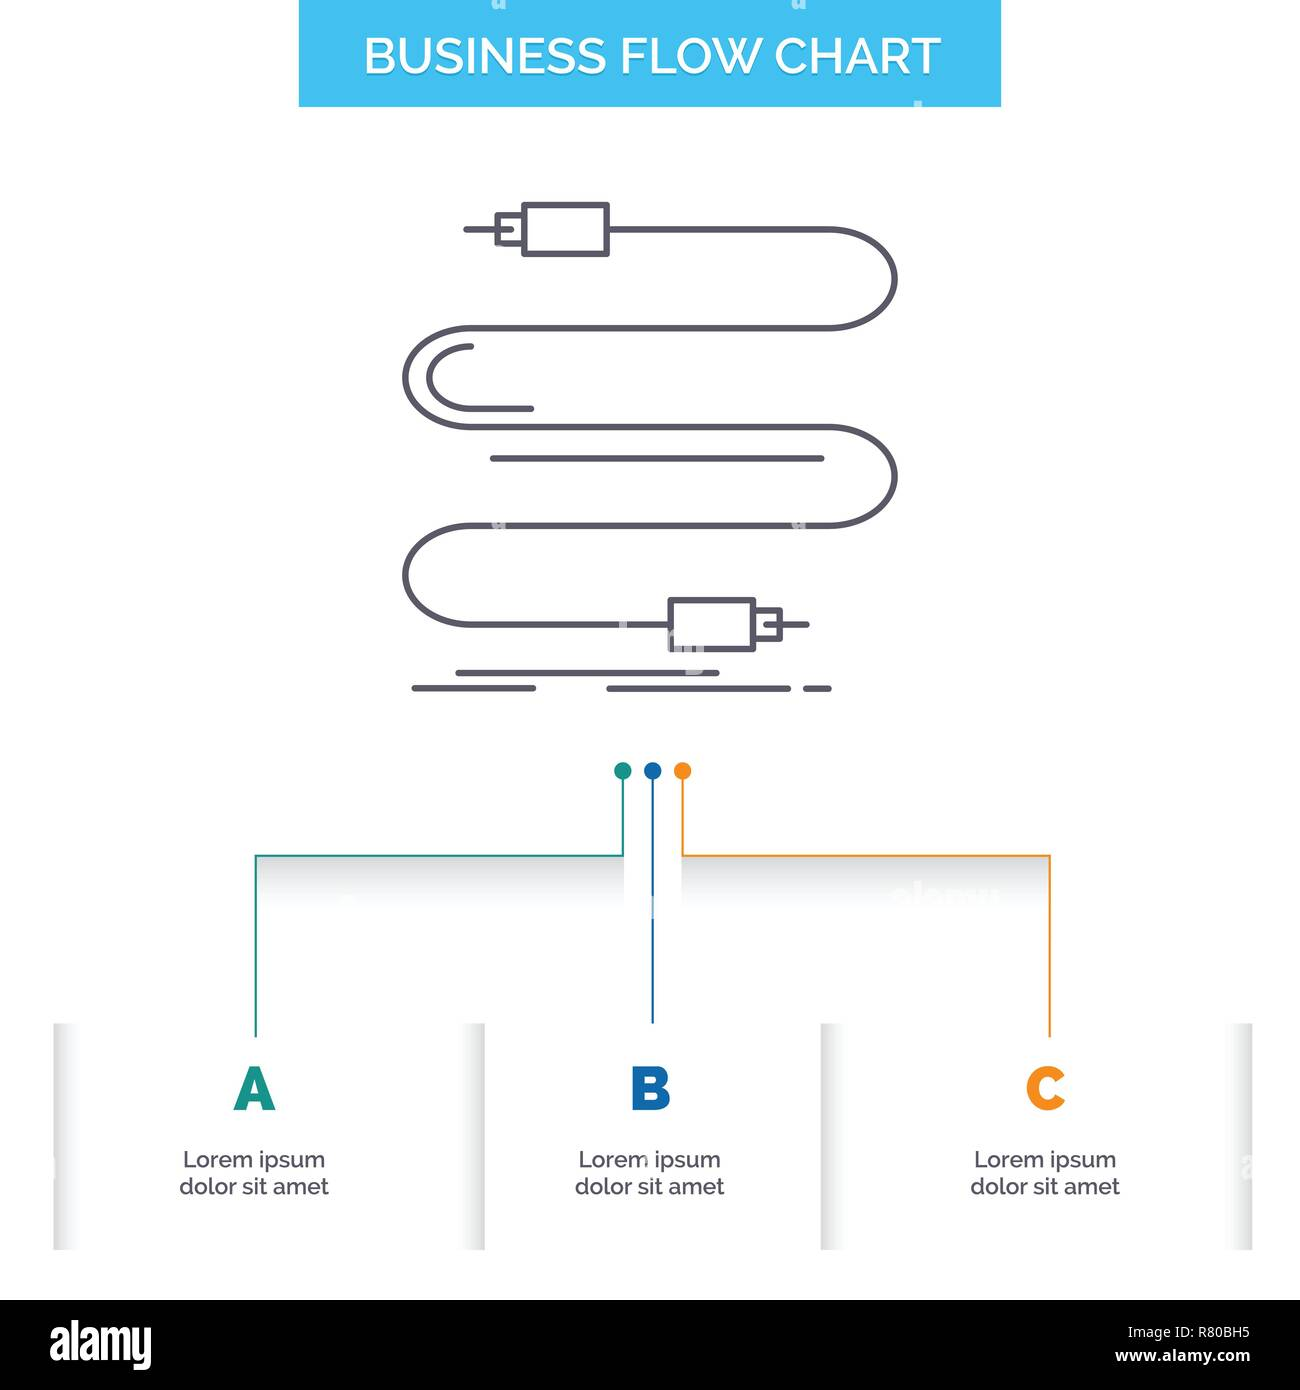 hight resolution of audio cable cord sound wire business flow chart design with 3 steps line icon for presentation background template place for text